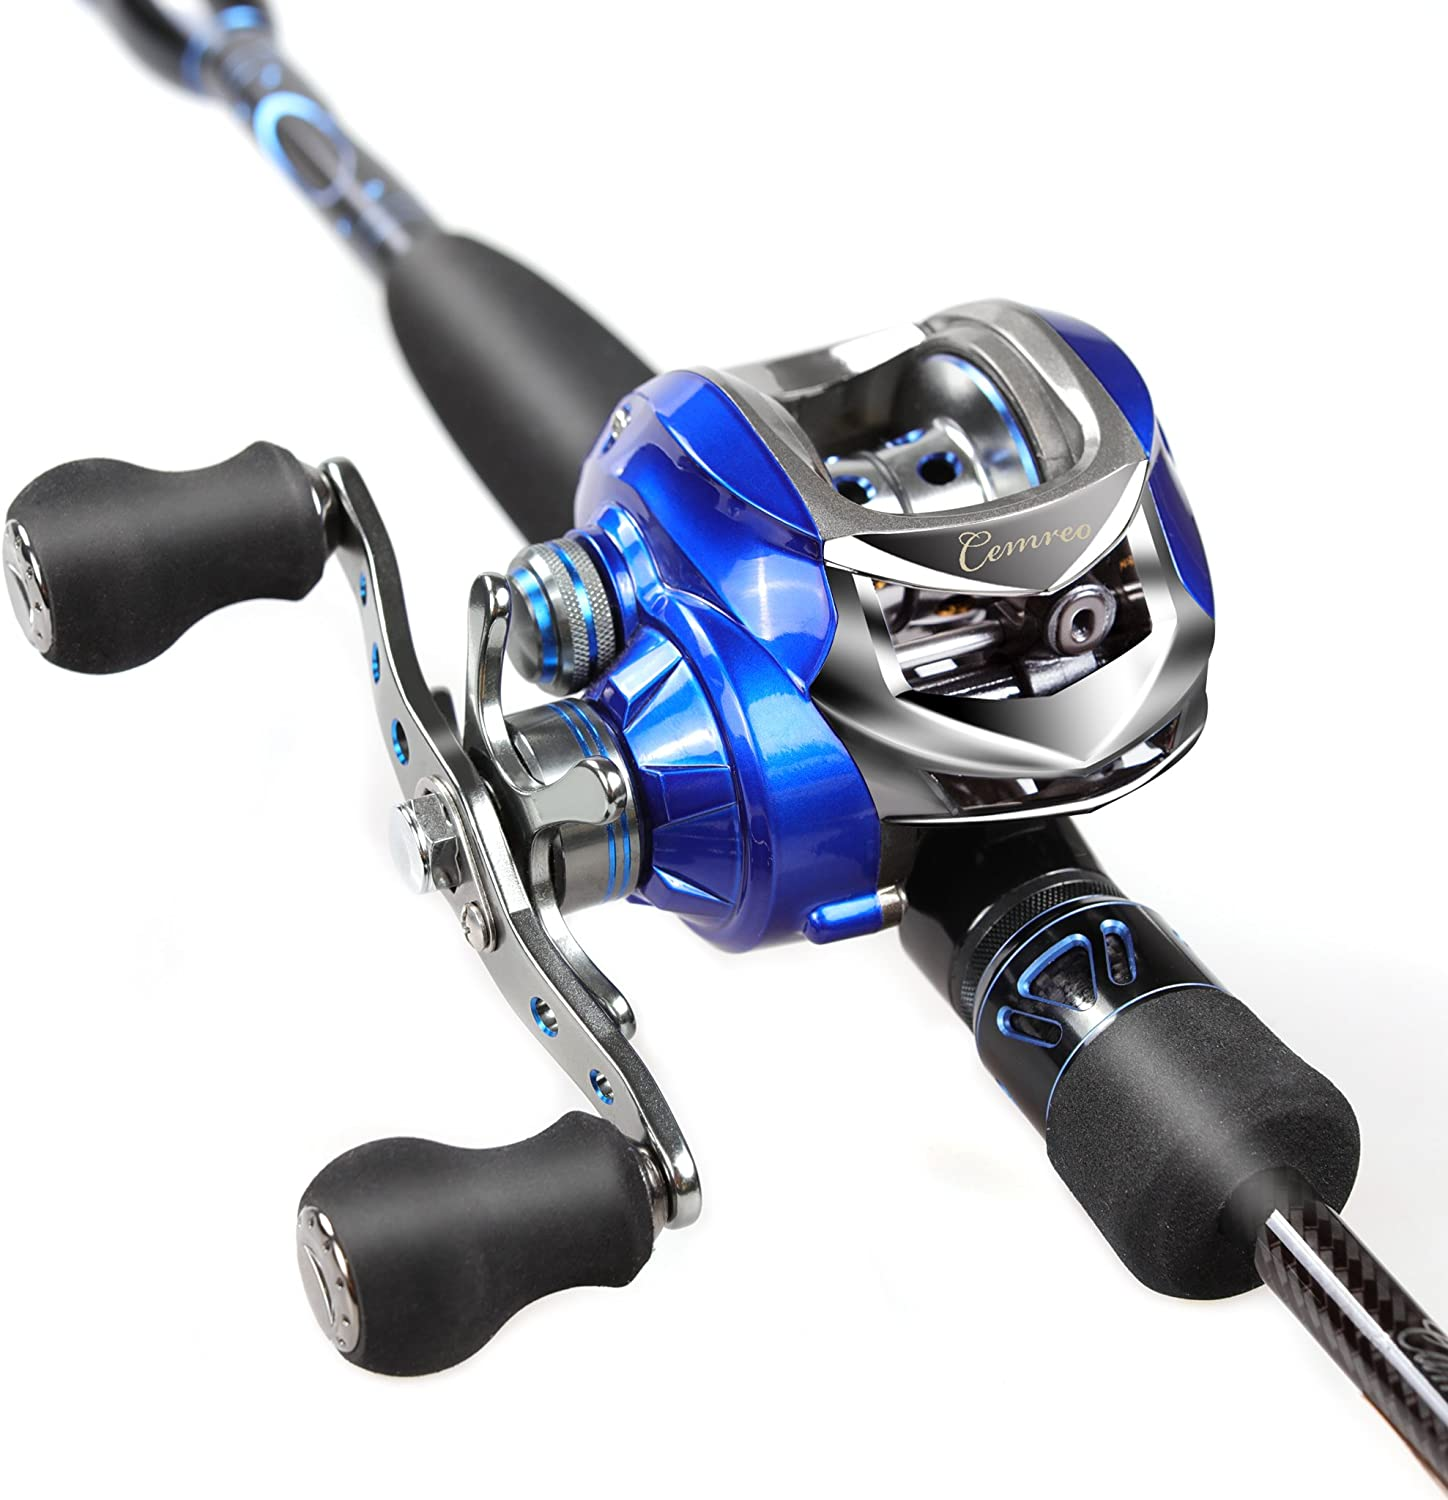 Camero Baitcastning Rod and Reel Combo 7Feet MPower with Portable Case